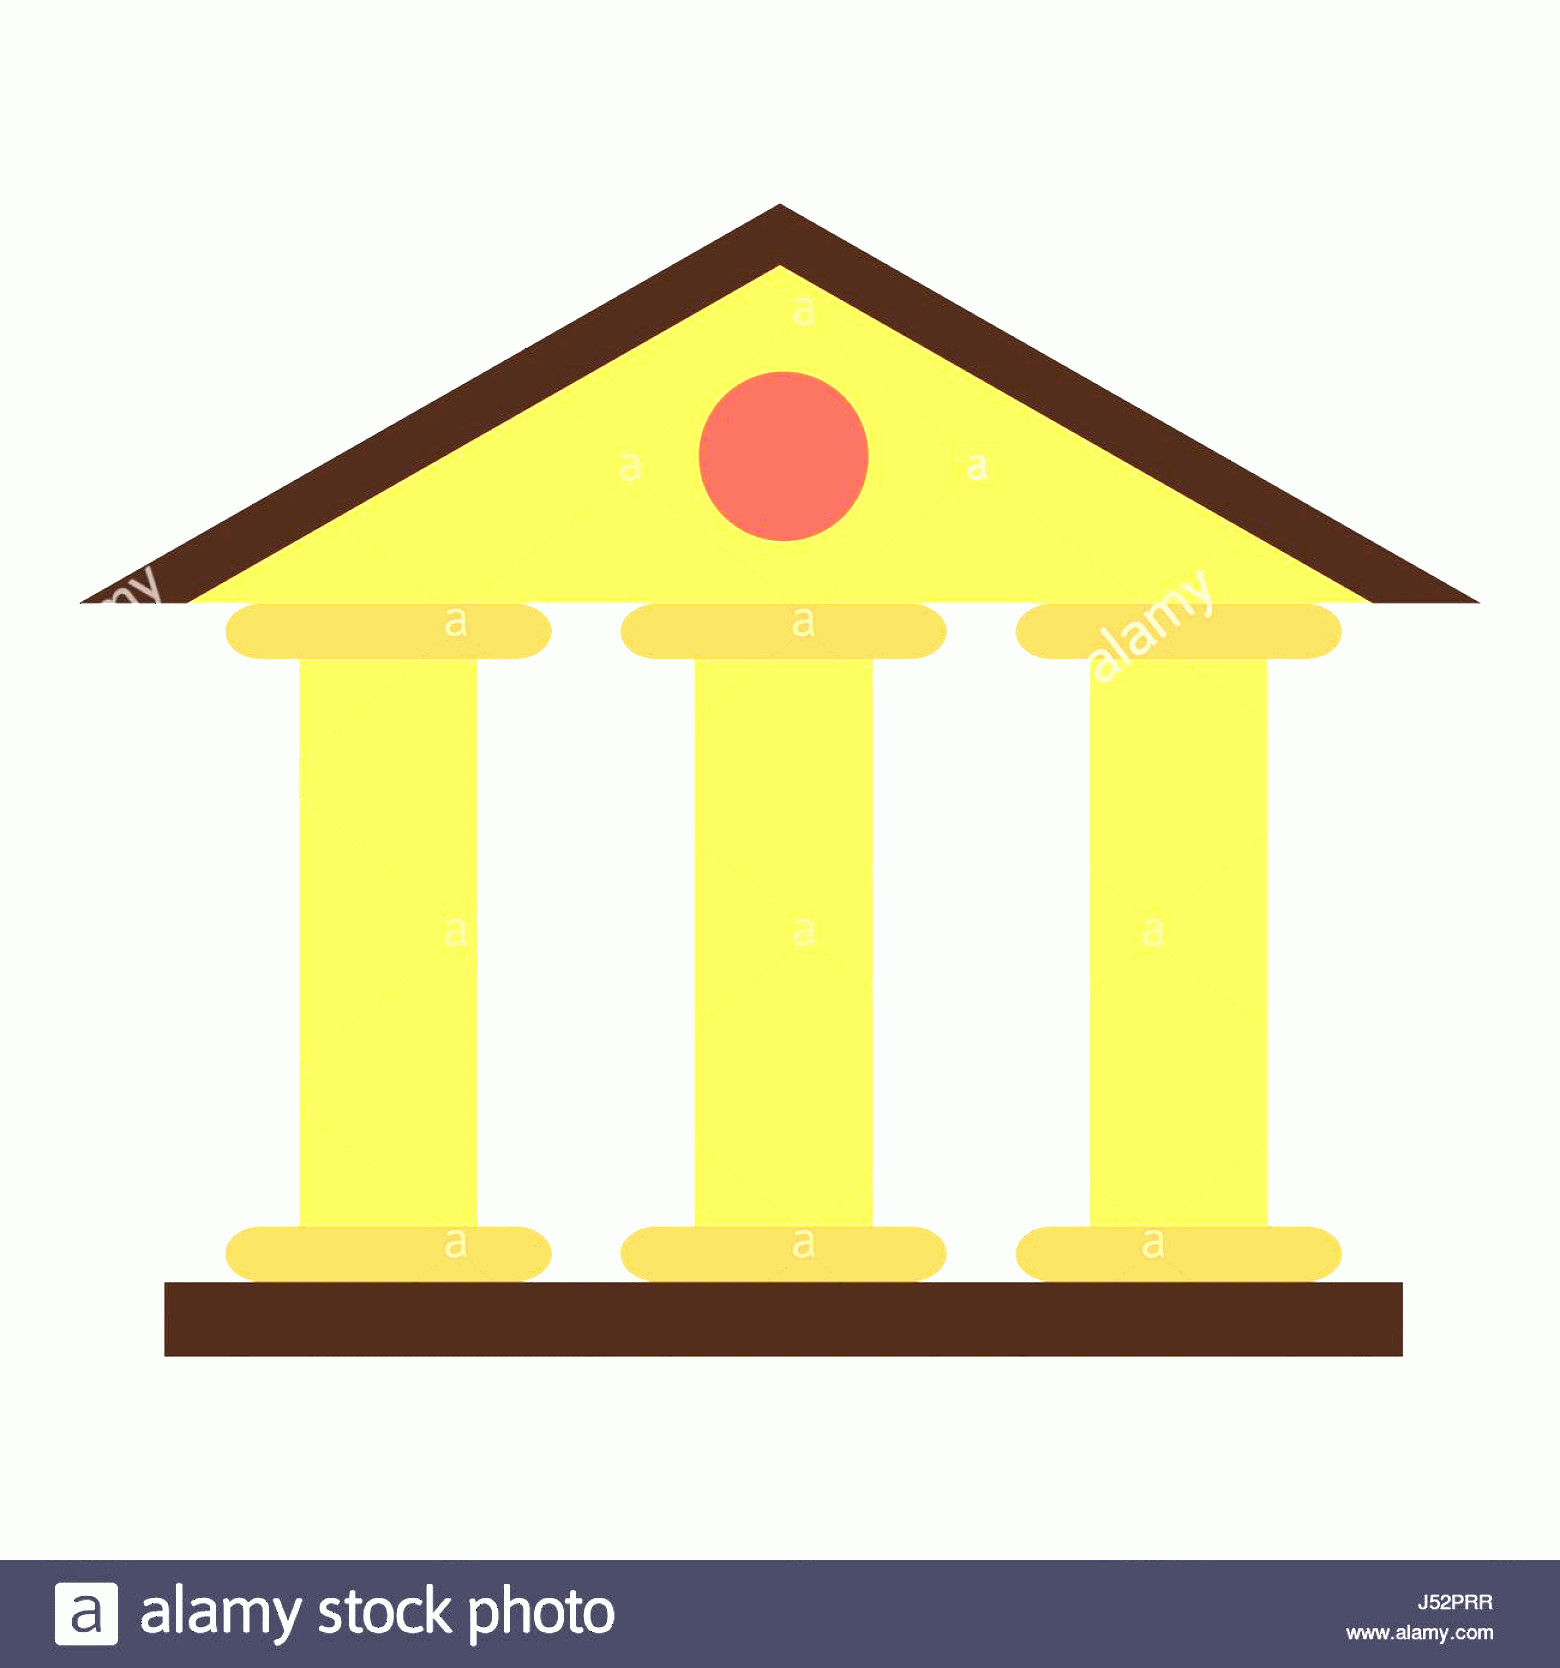 Court Building Vector: Stock Photo Justice Court Building Icon Flat Style